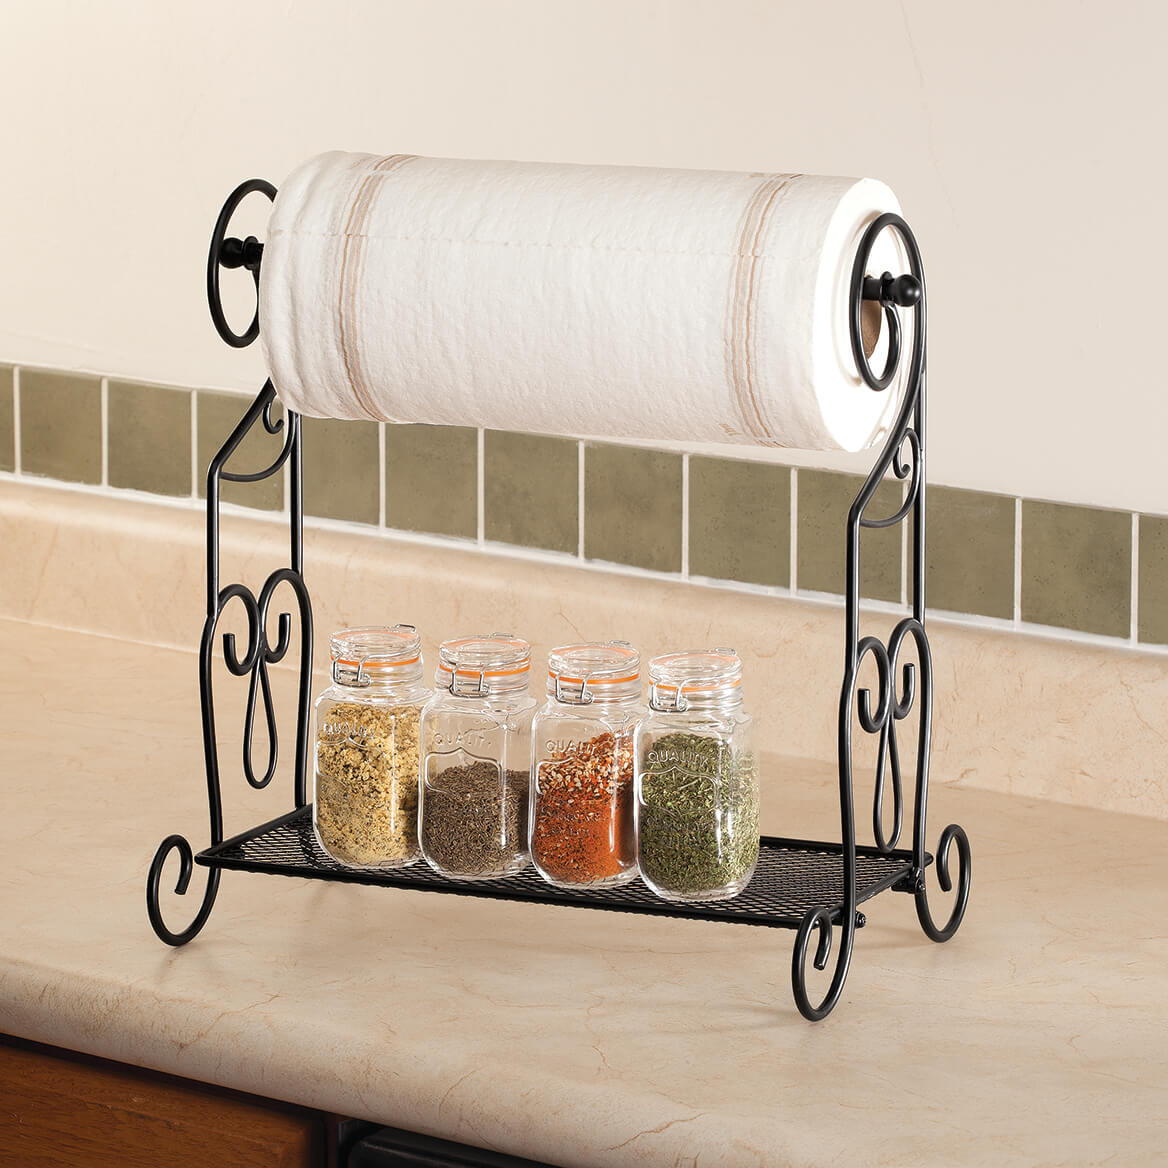 Home Marketplace Kitchen Paper Towel Rack & Organizer-367199